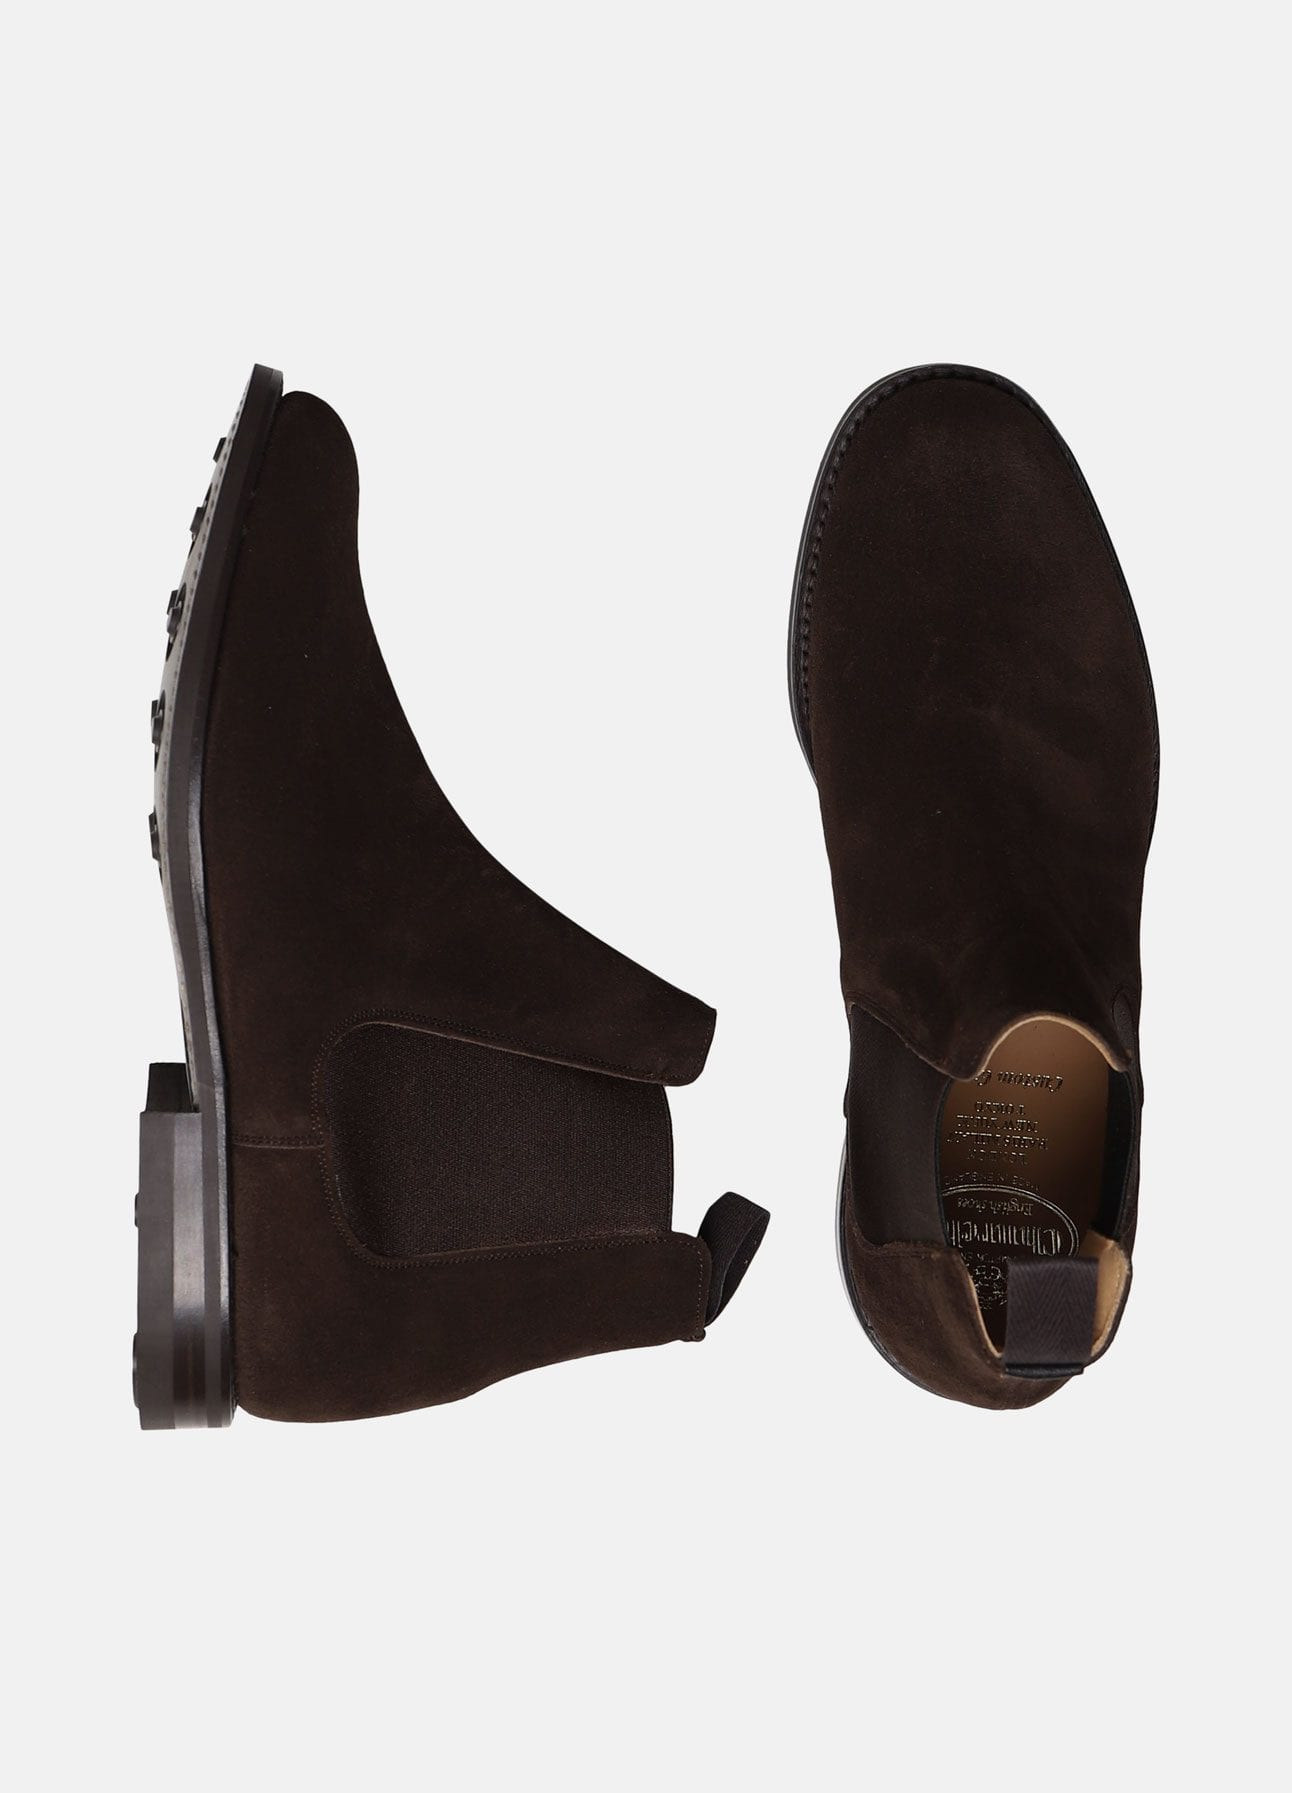 Brun chelsea boot fra Church's